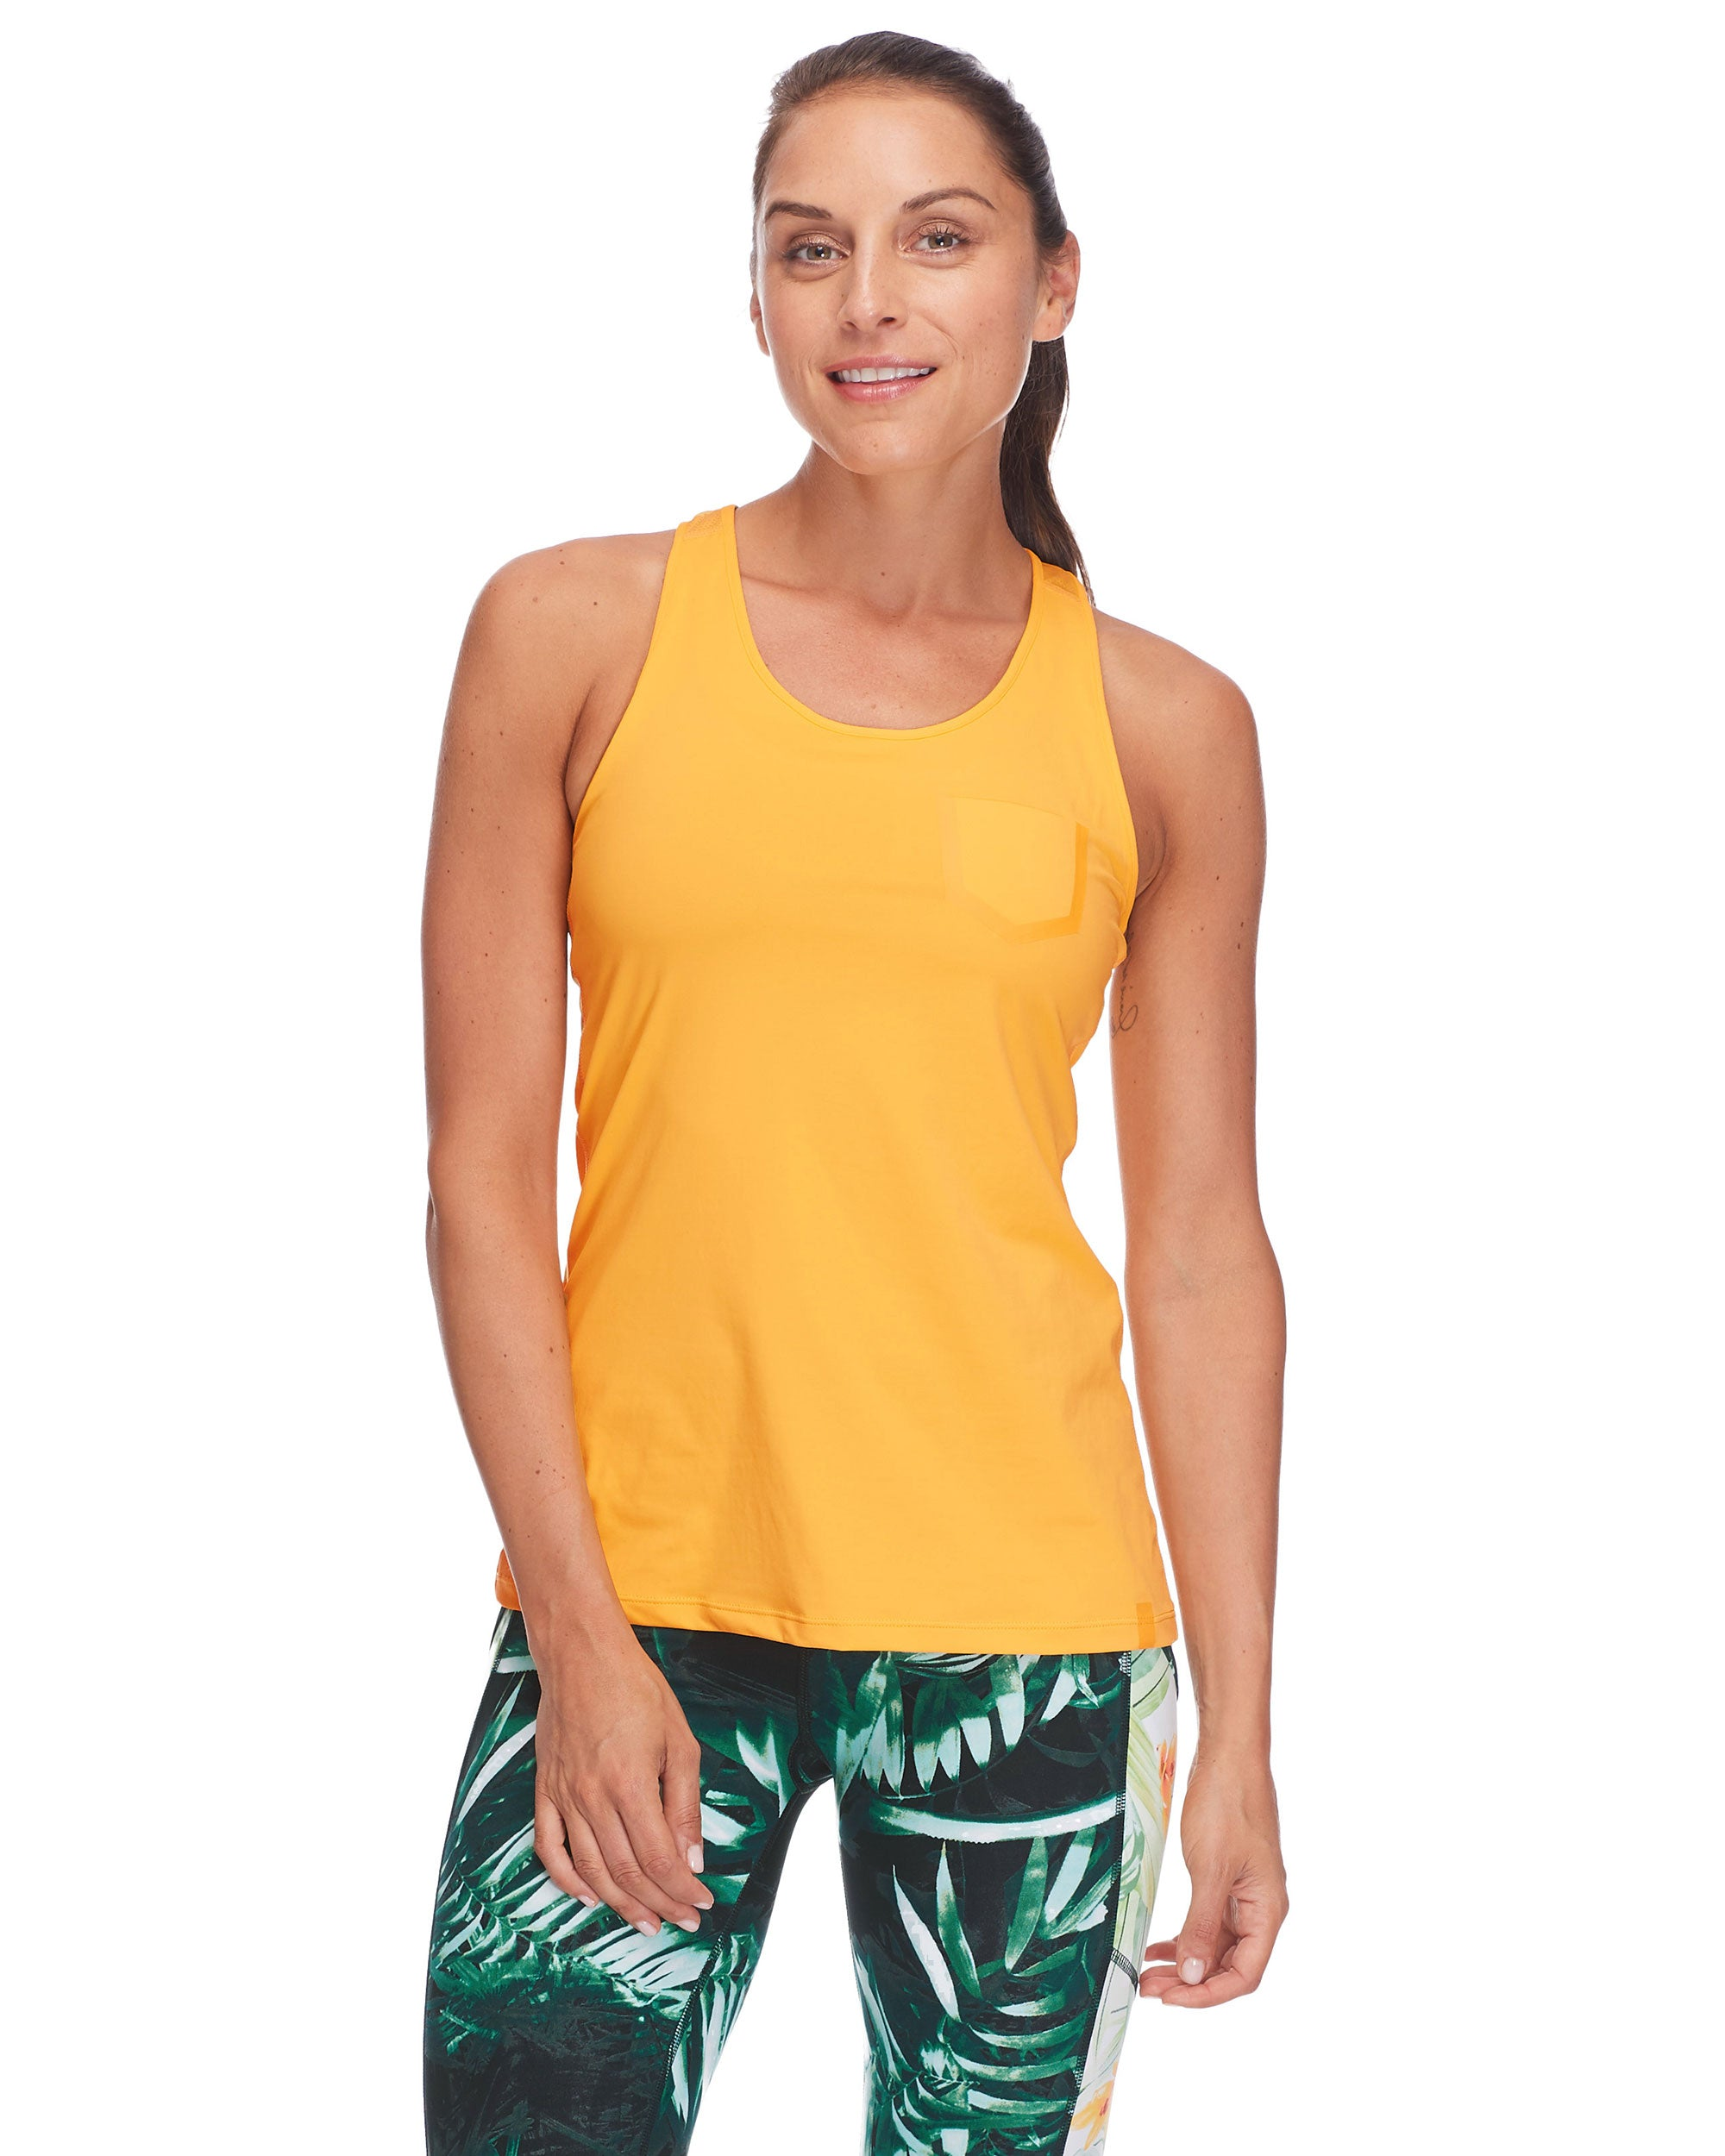 Meltemi Racerback Tank Top - Sunshine